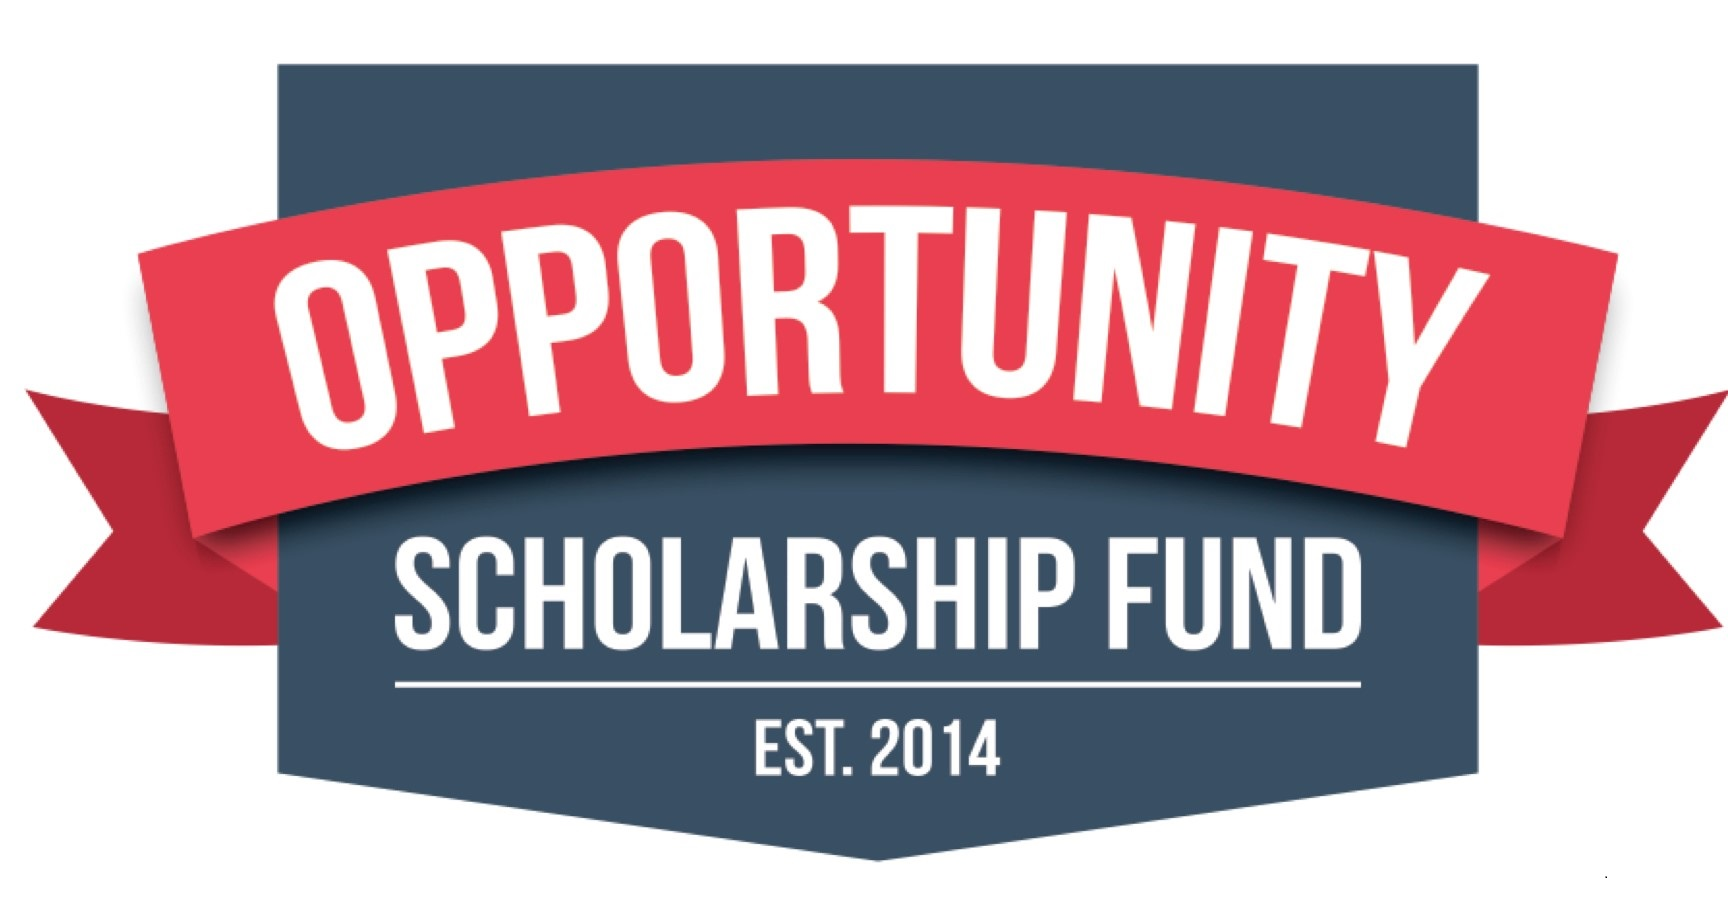 Opportunity Scholarship Fund